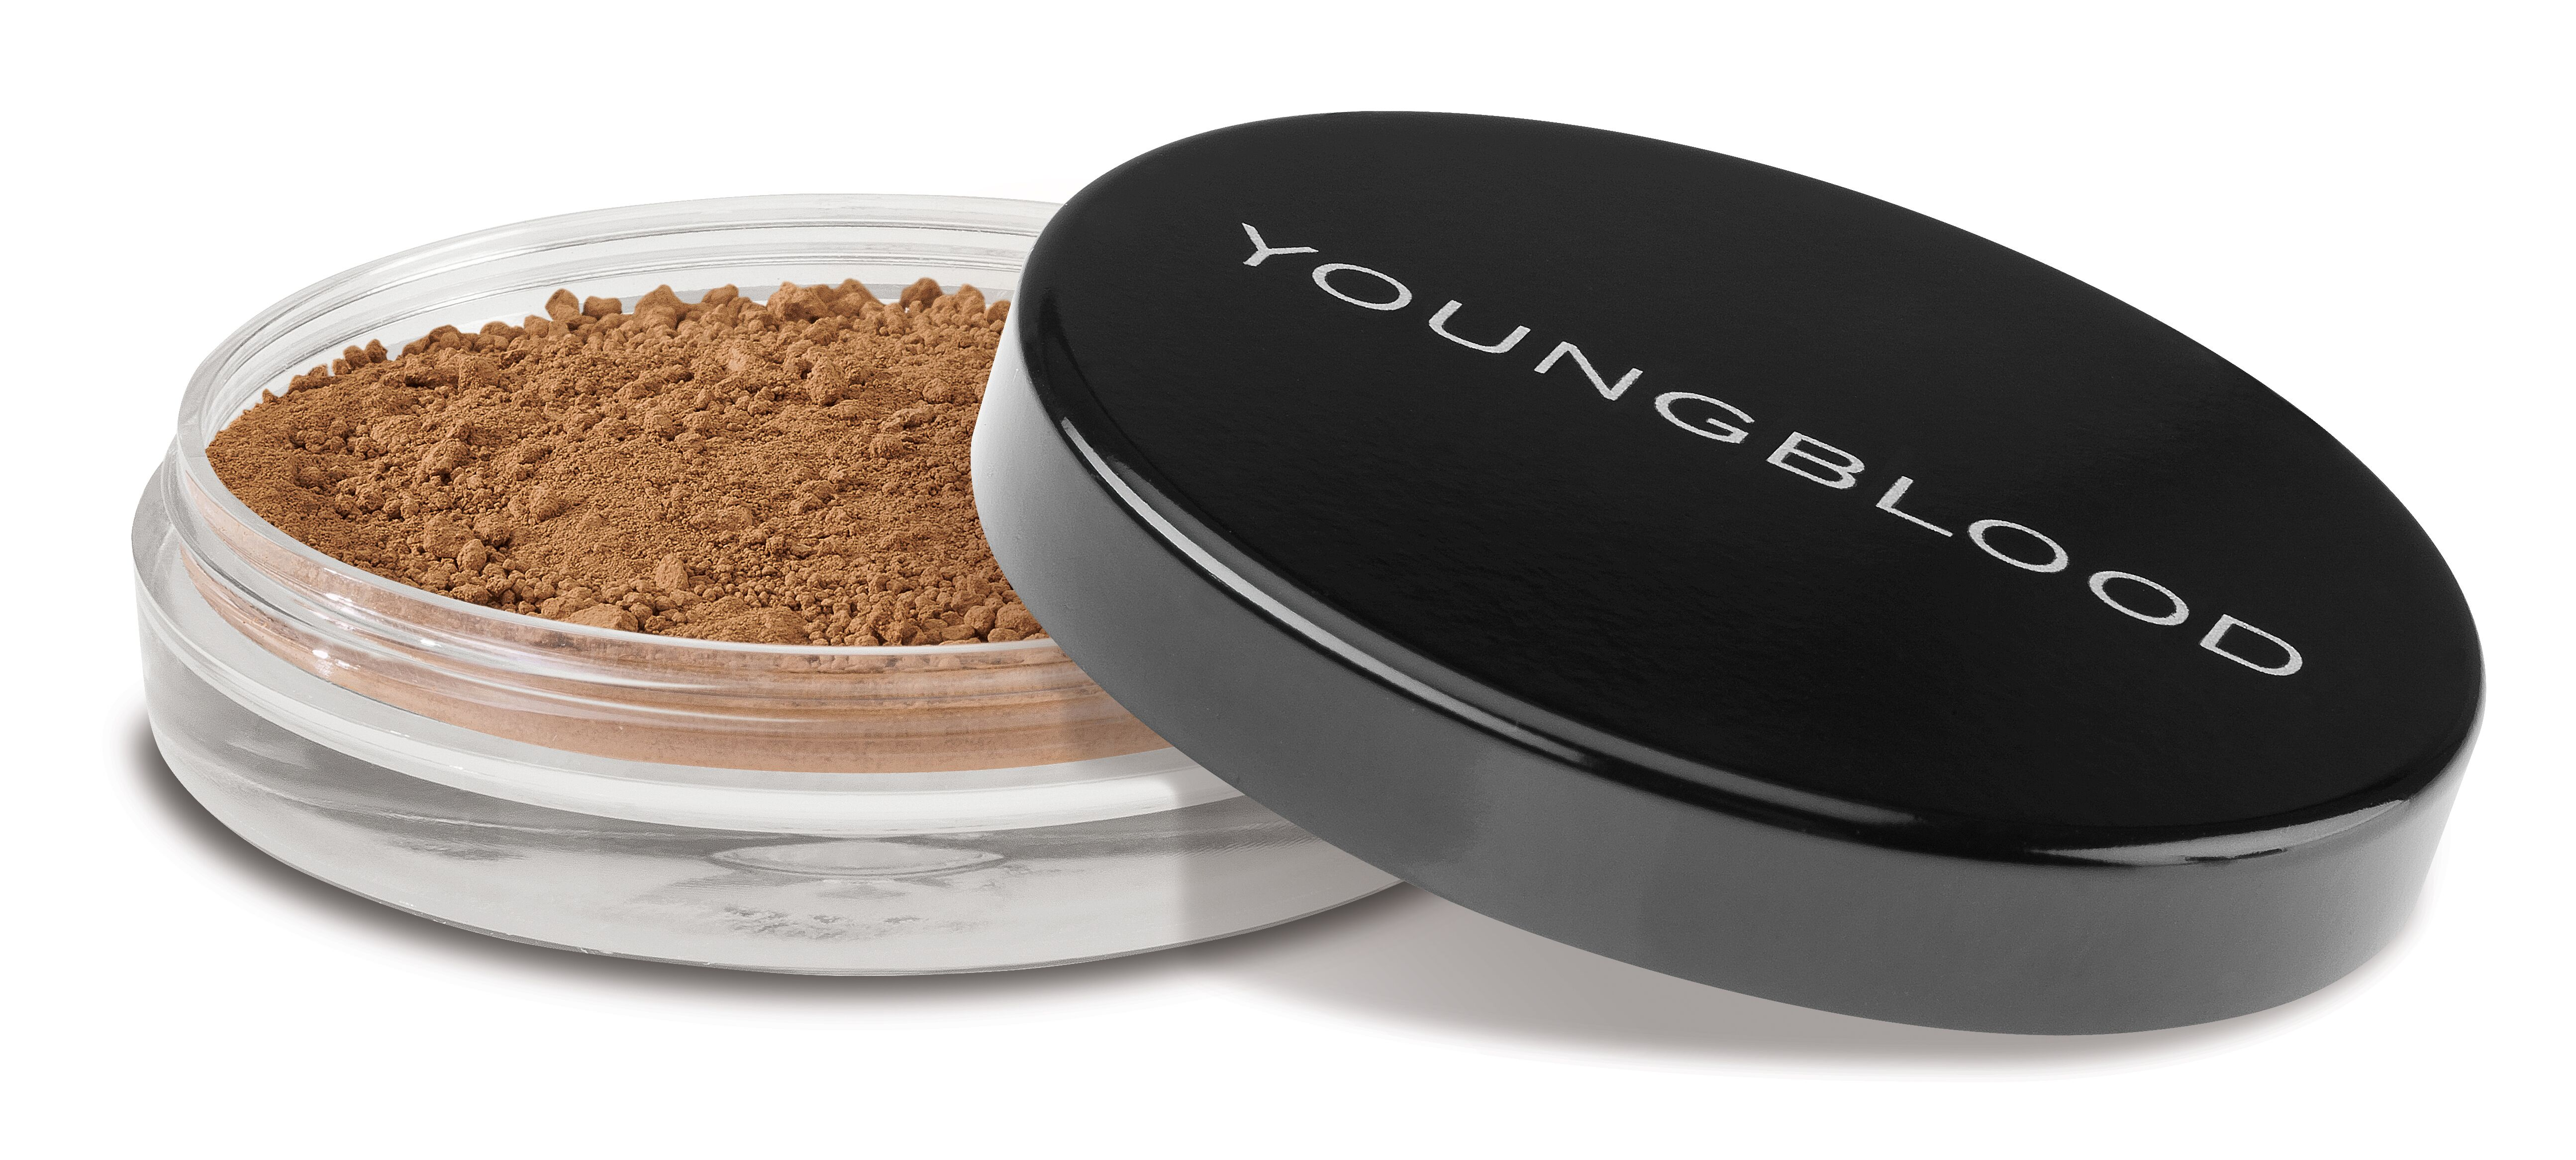 Youngblood natural loose mineral foundation, coffee